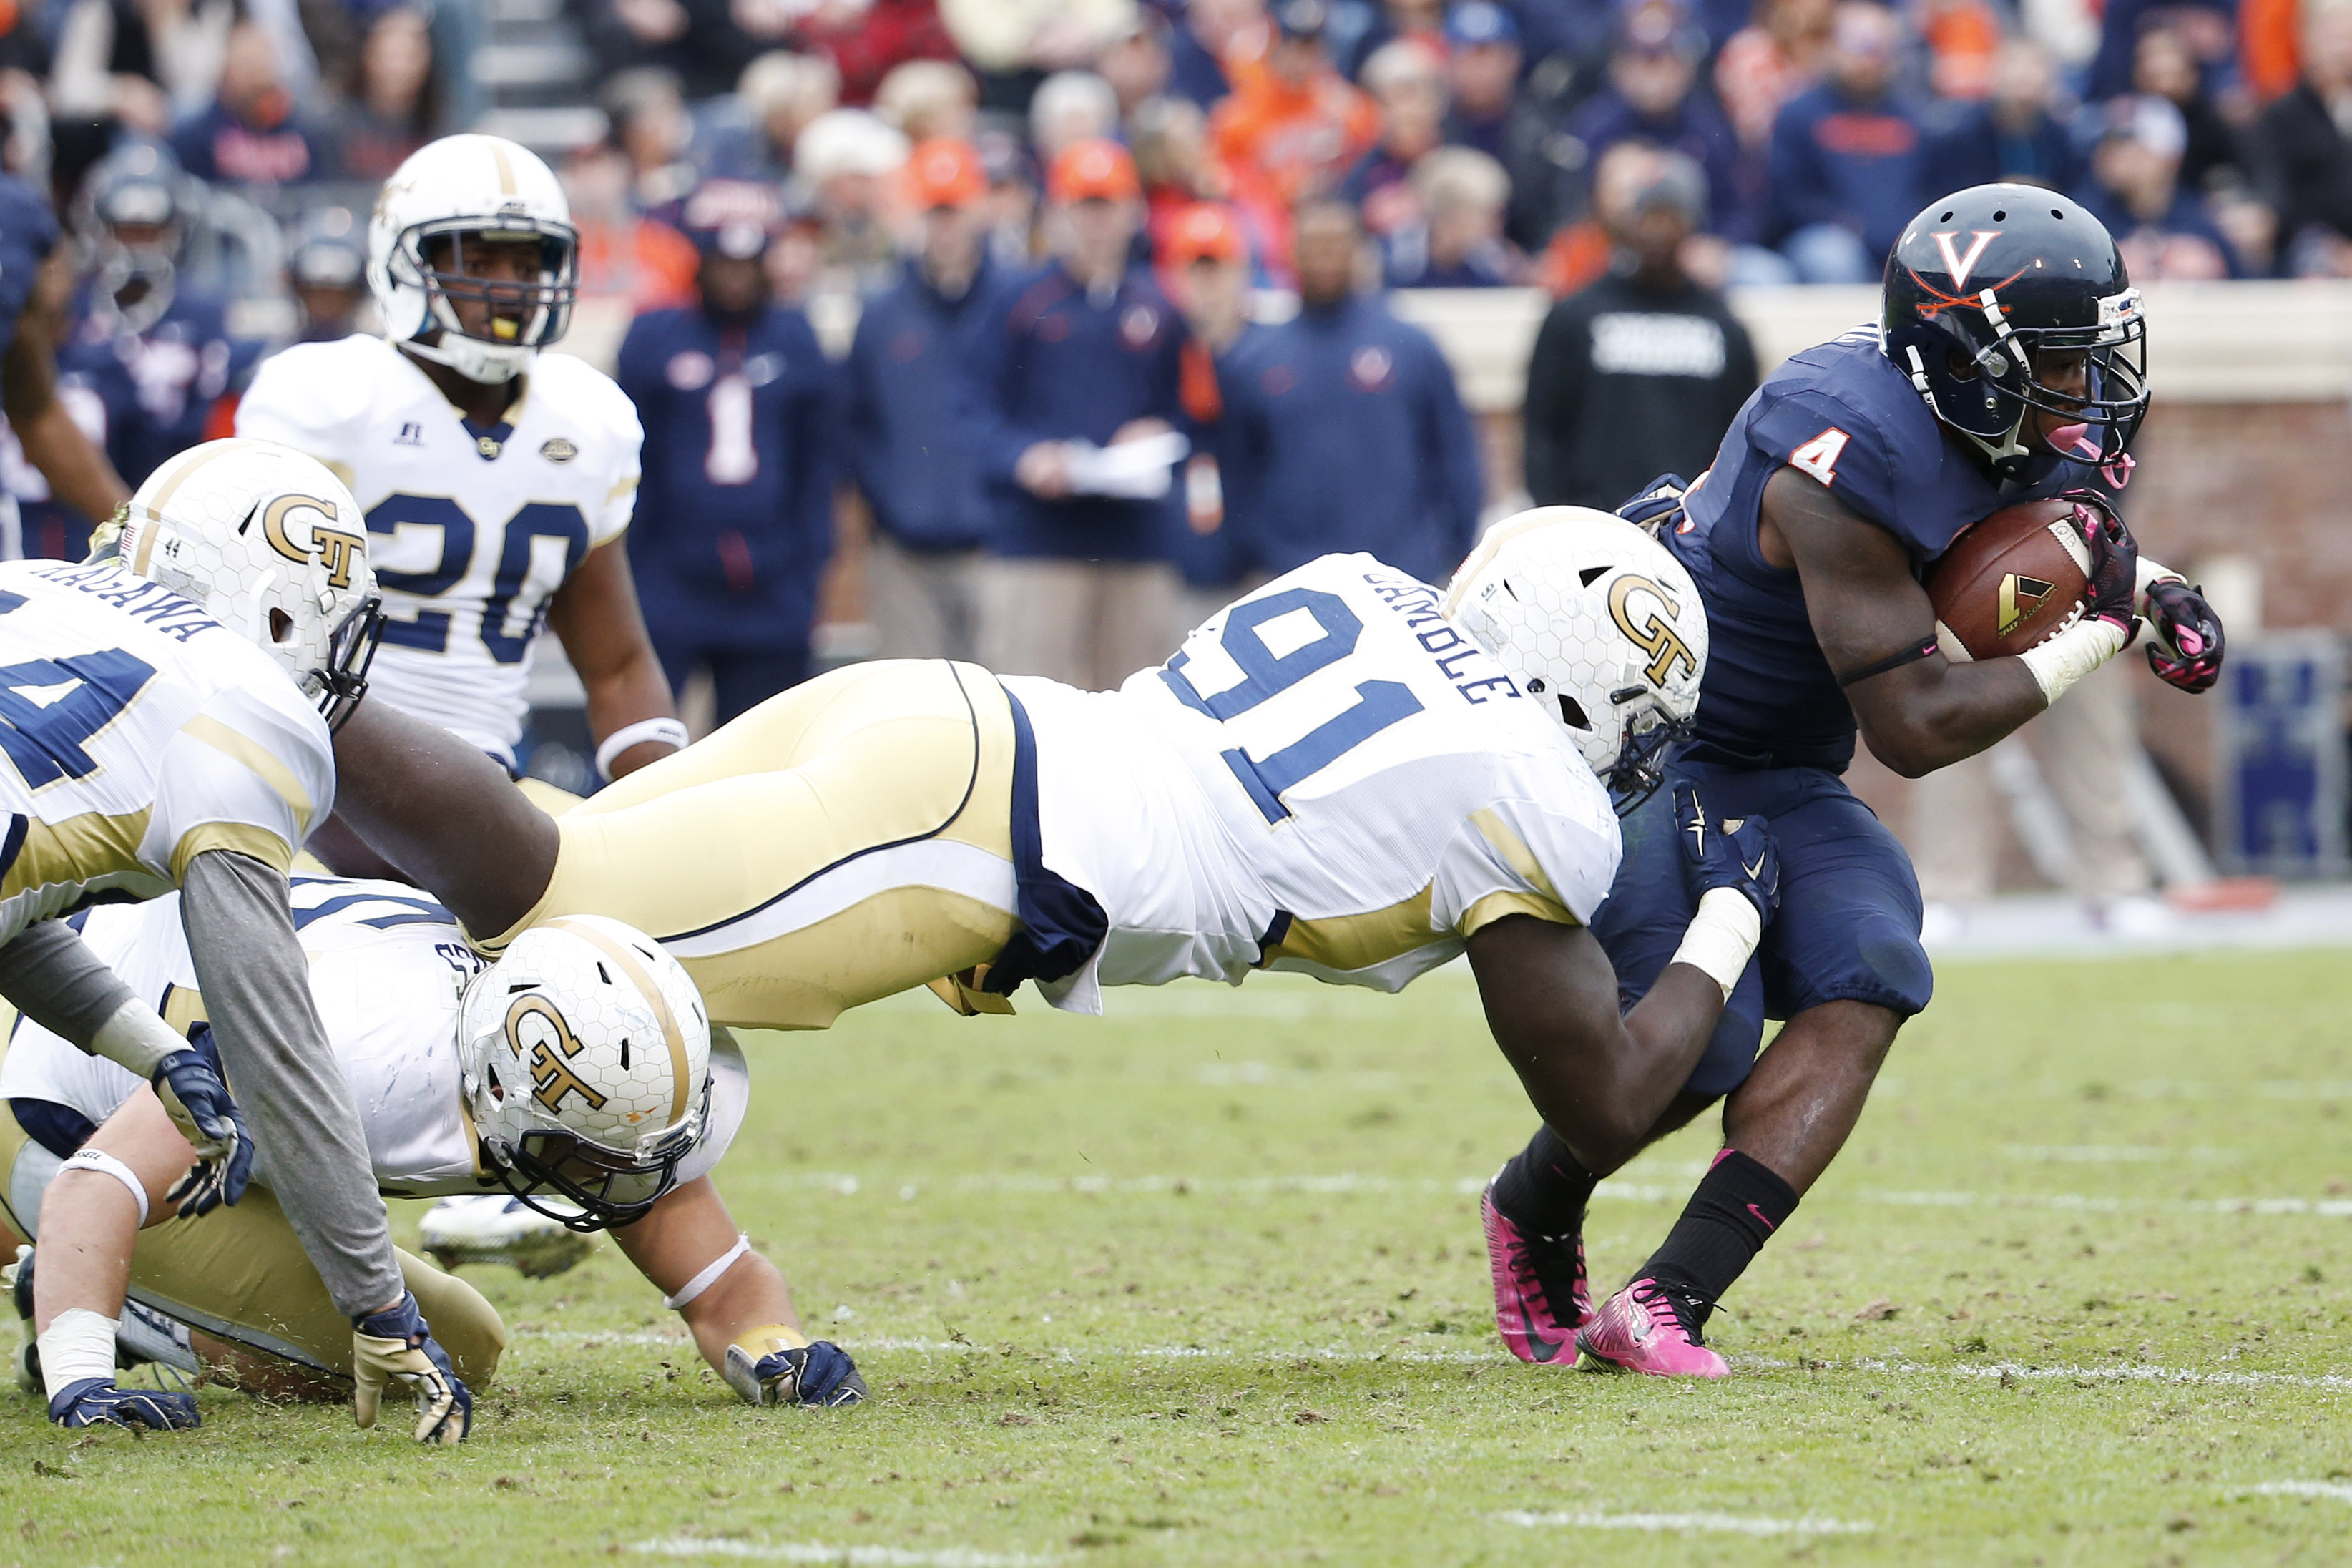 football georgia tech yellow players jets jackets roster impact dt undrafted york agents final virginia usa nfl today gamble patrick